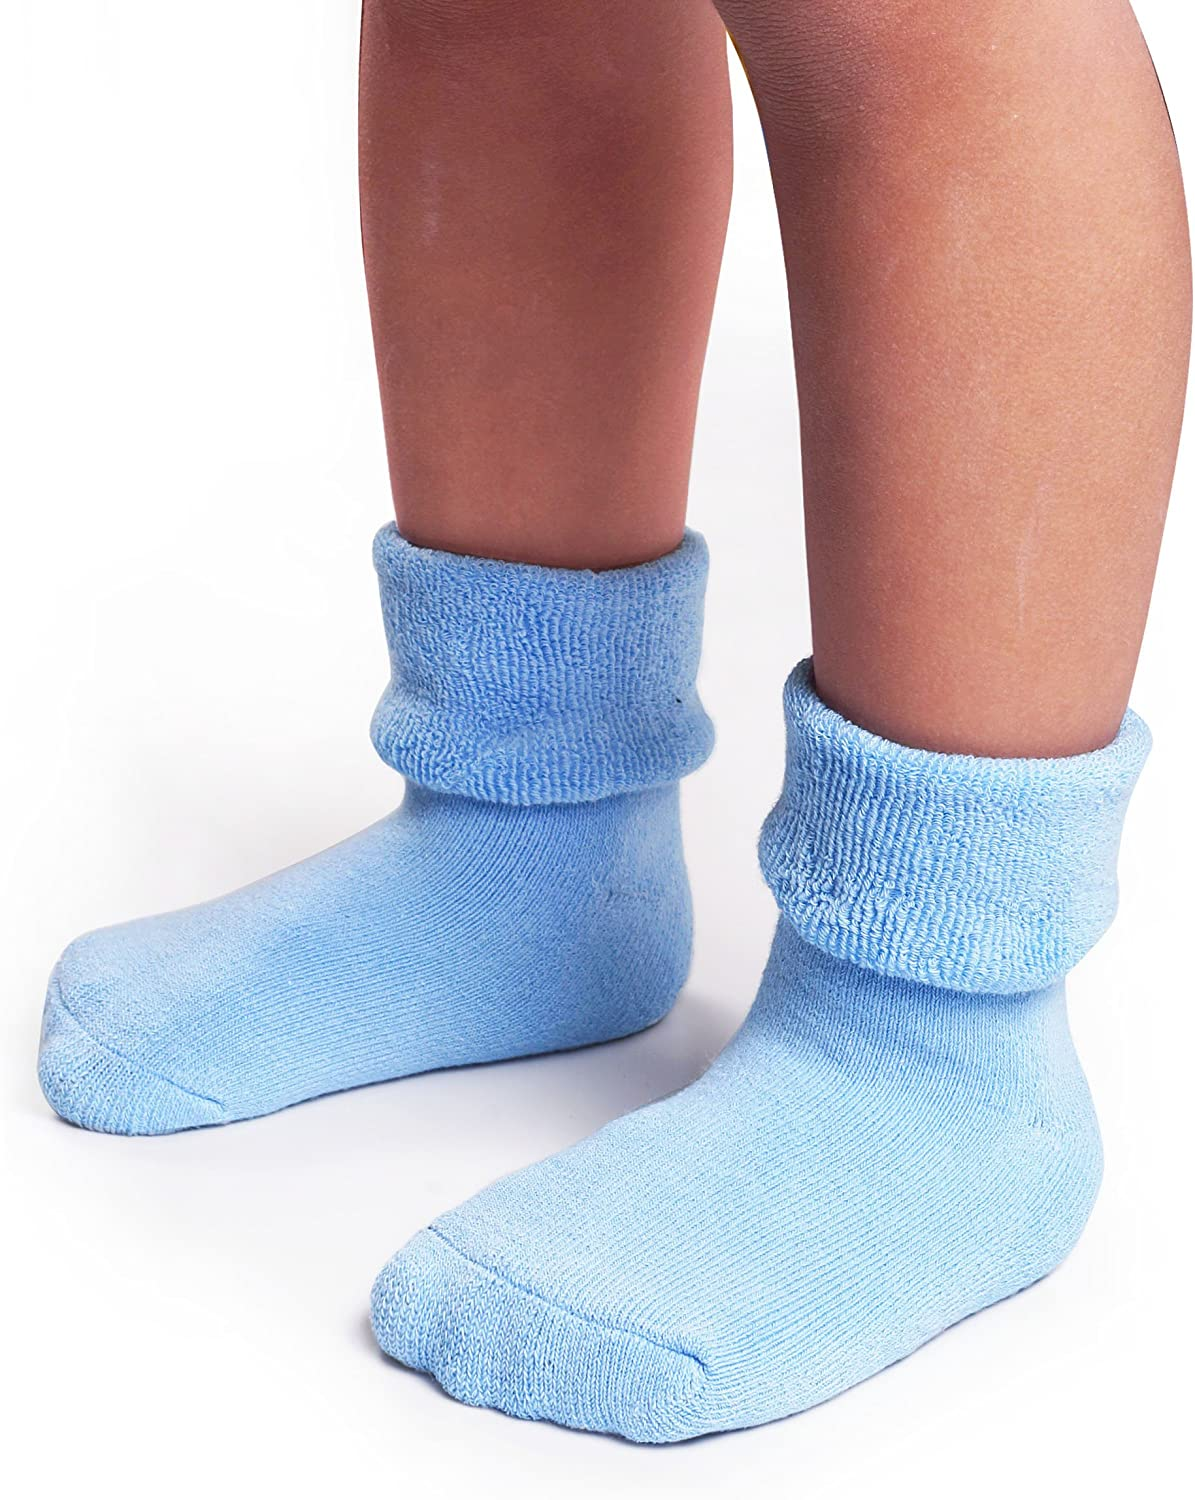 Infant Toddler Winter Cute Cotton Socks 3-36 Months Gifts Set 6 Pairs Pack Baby Boys Girls Thick Warm Anti Slip Terry Socks